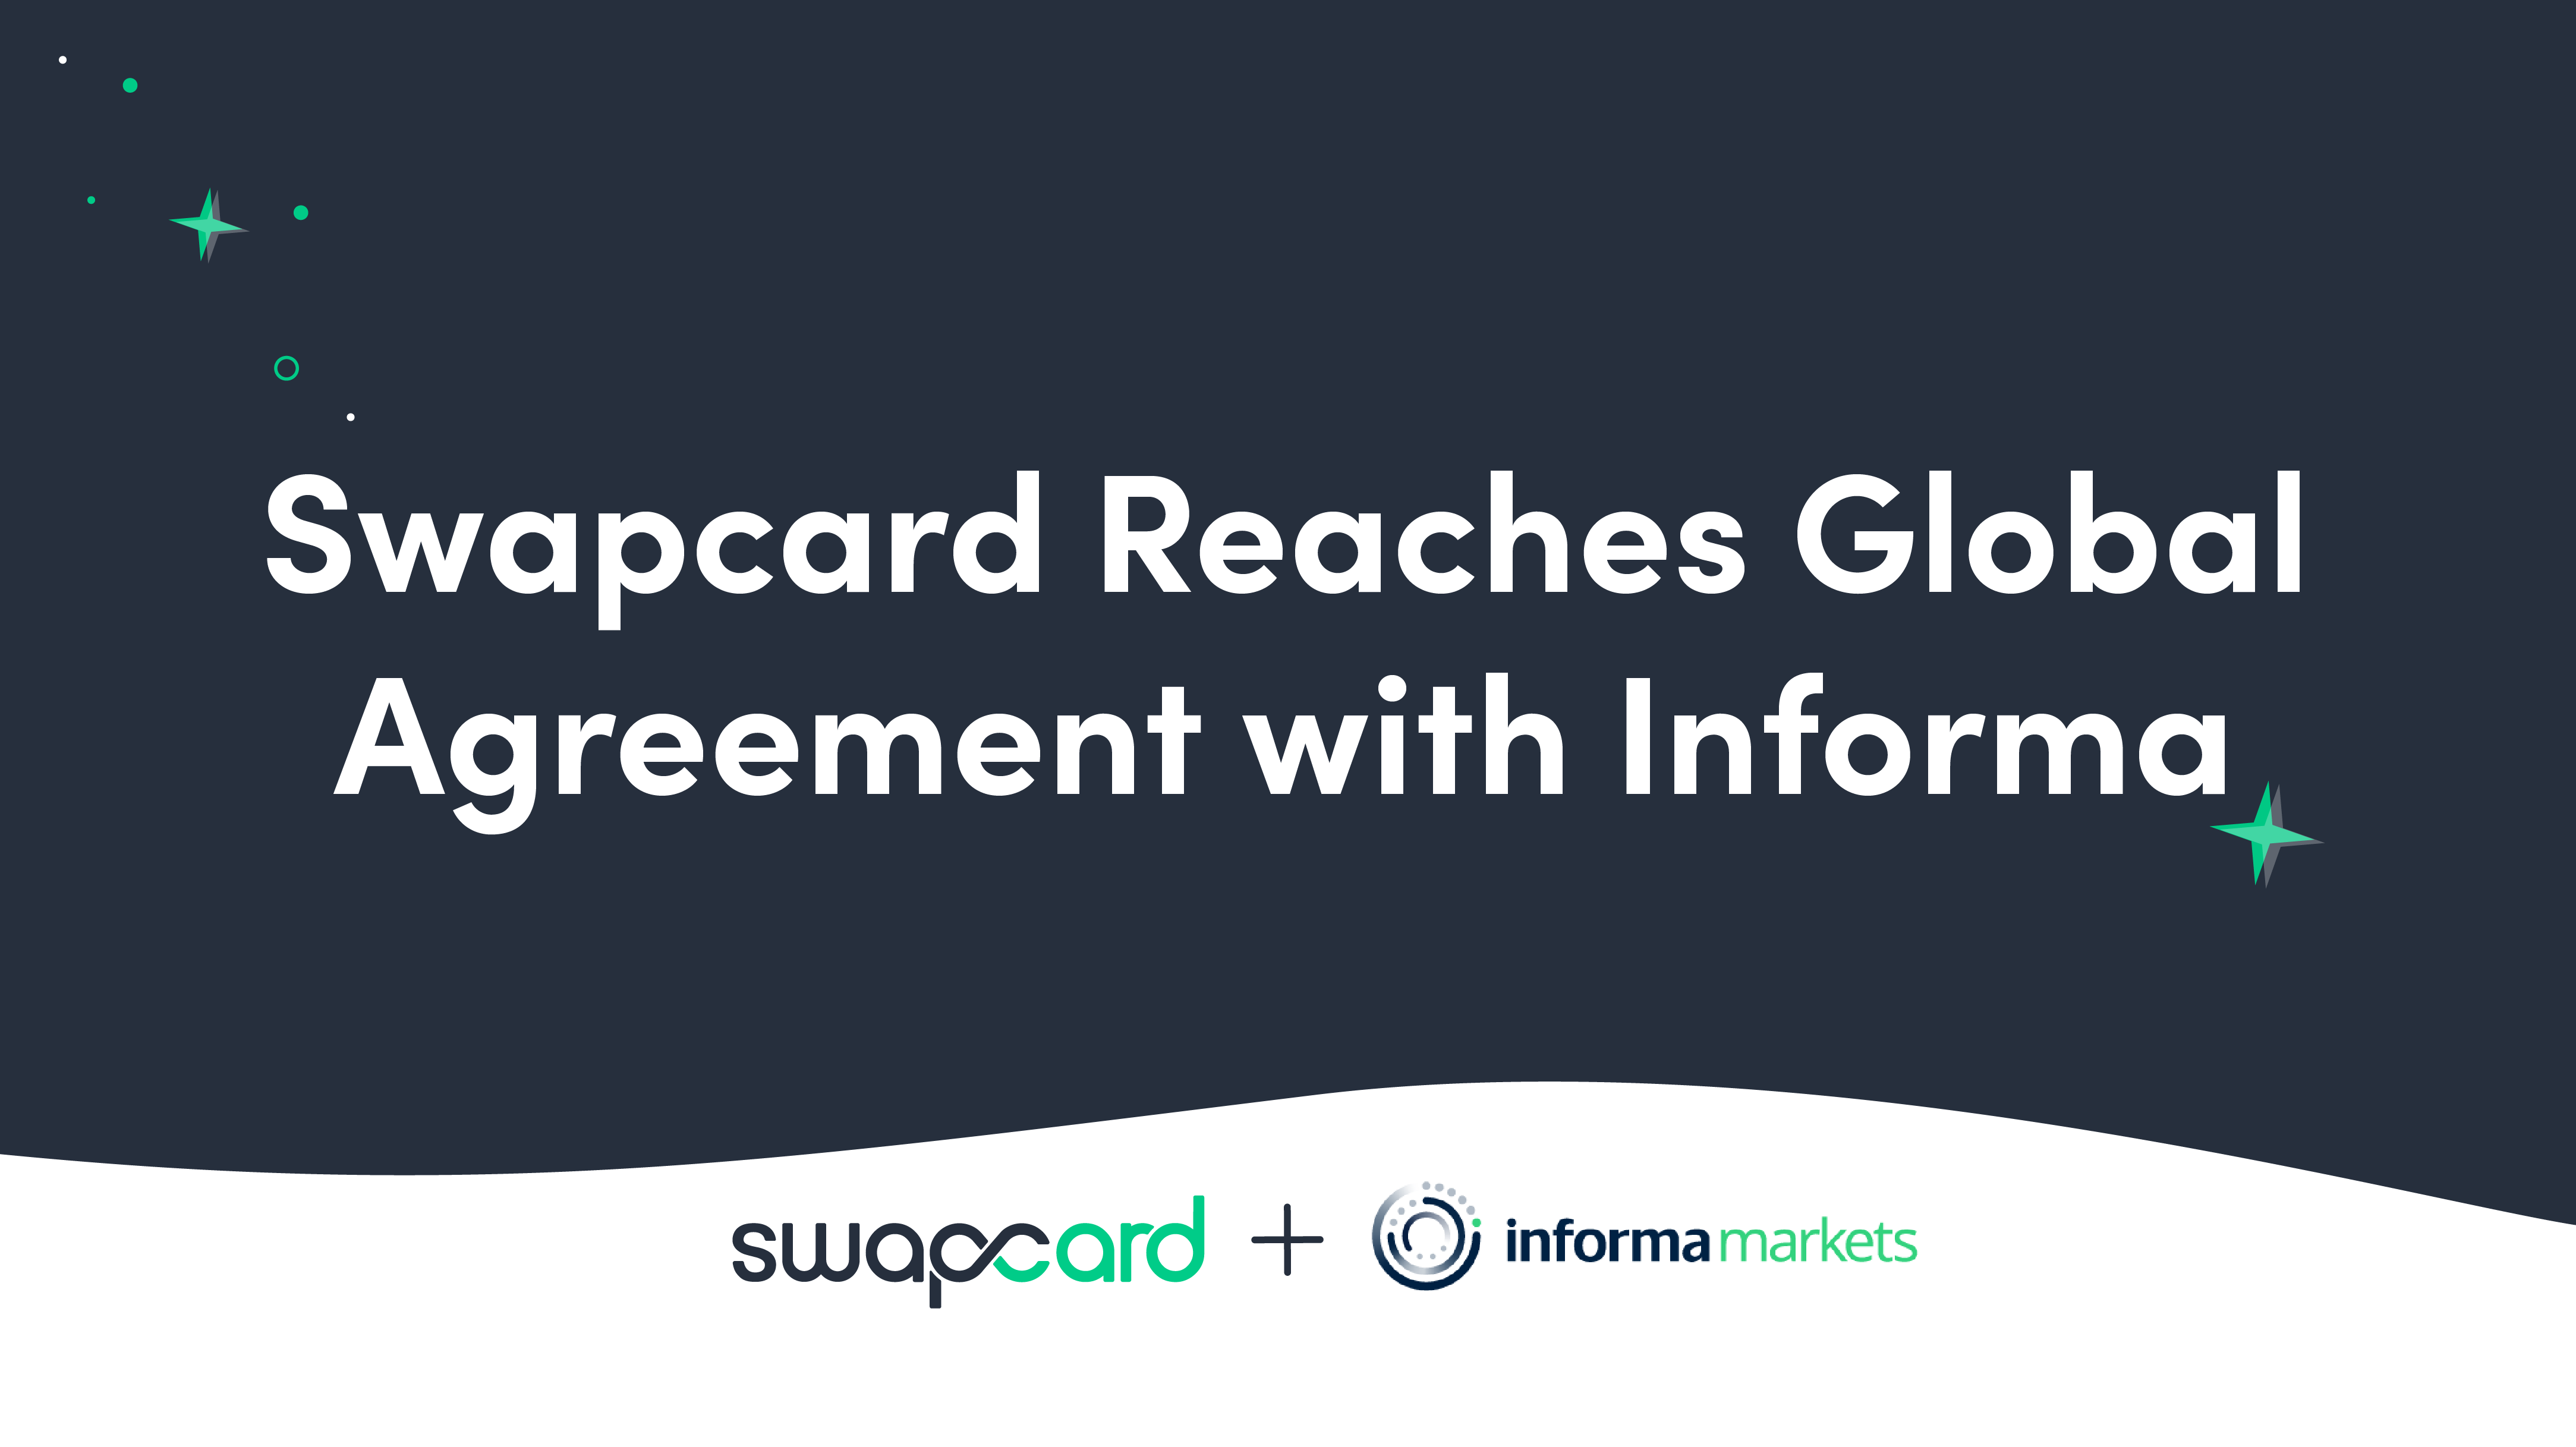 Swapcard Reaches Global Agreement with Informa